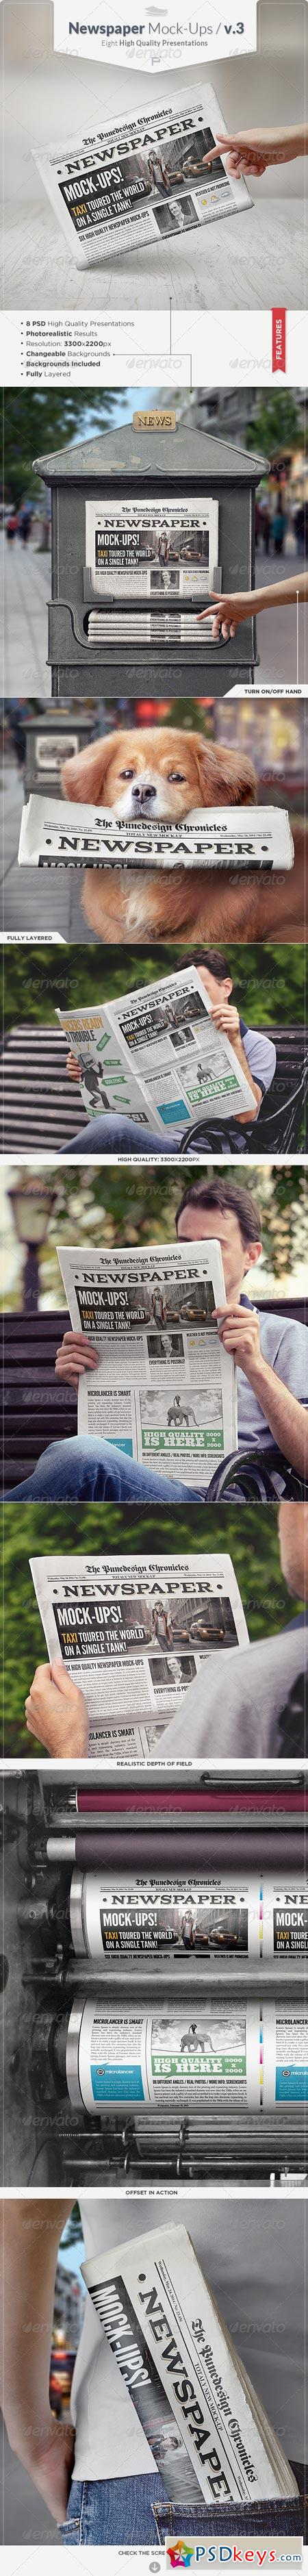 Newspaper Mock-Ups v.3. 7897076